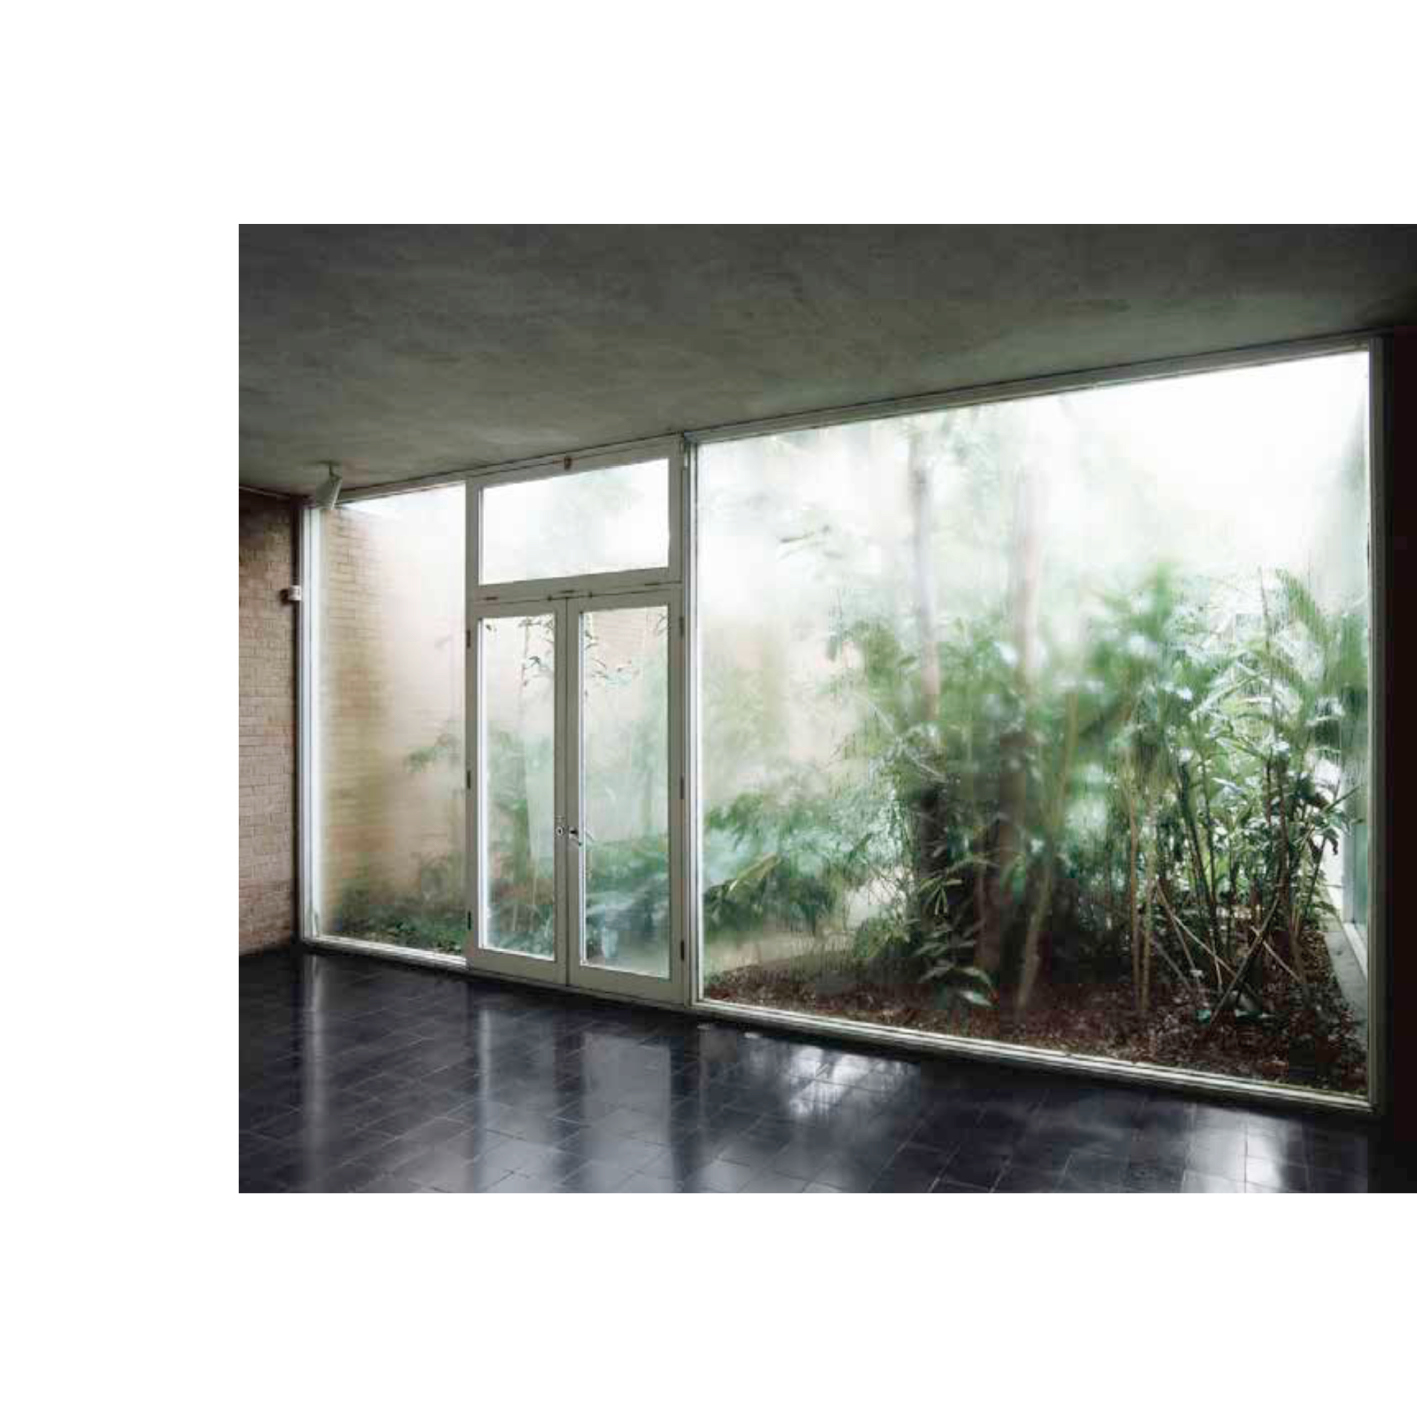 Luisa Lambri, Untitled, Menil House #01 (2002)